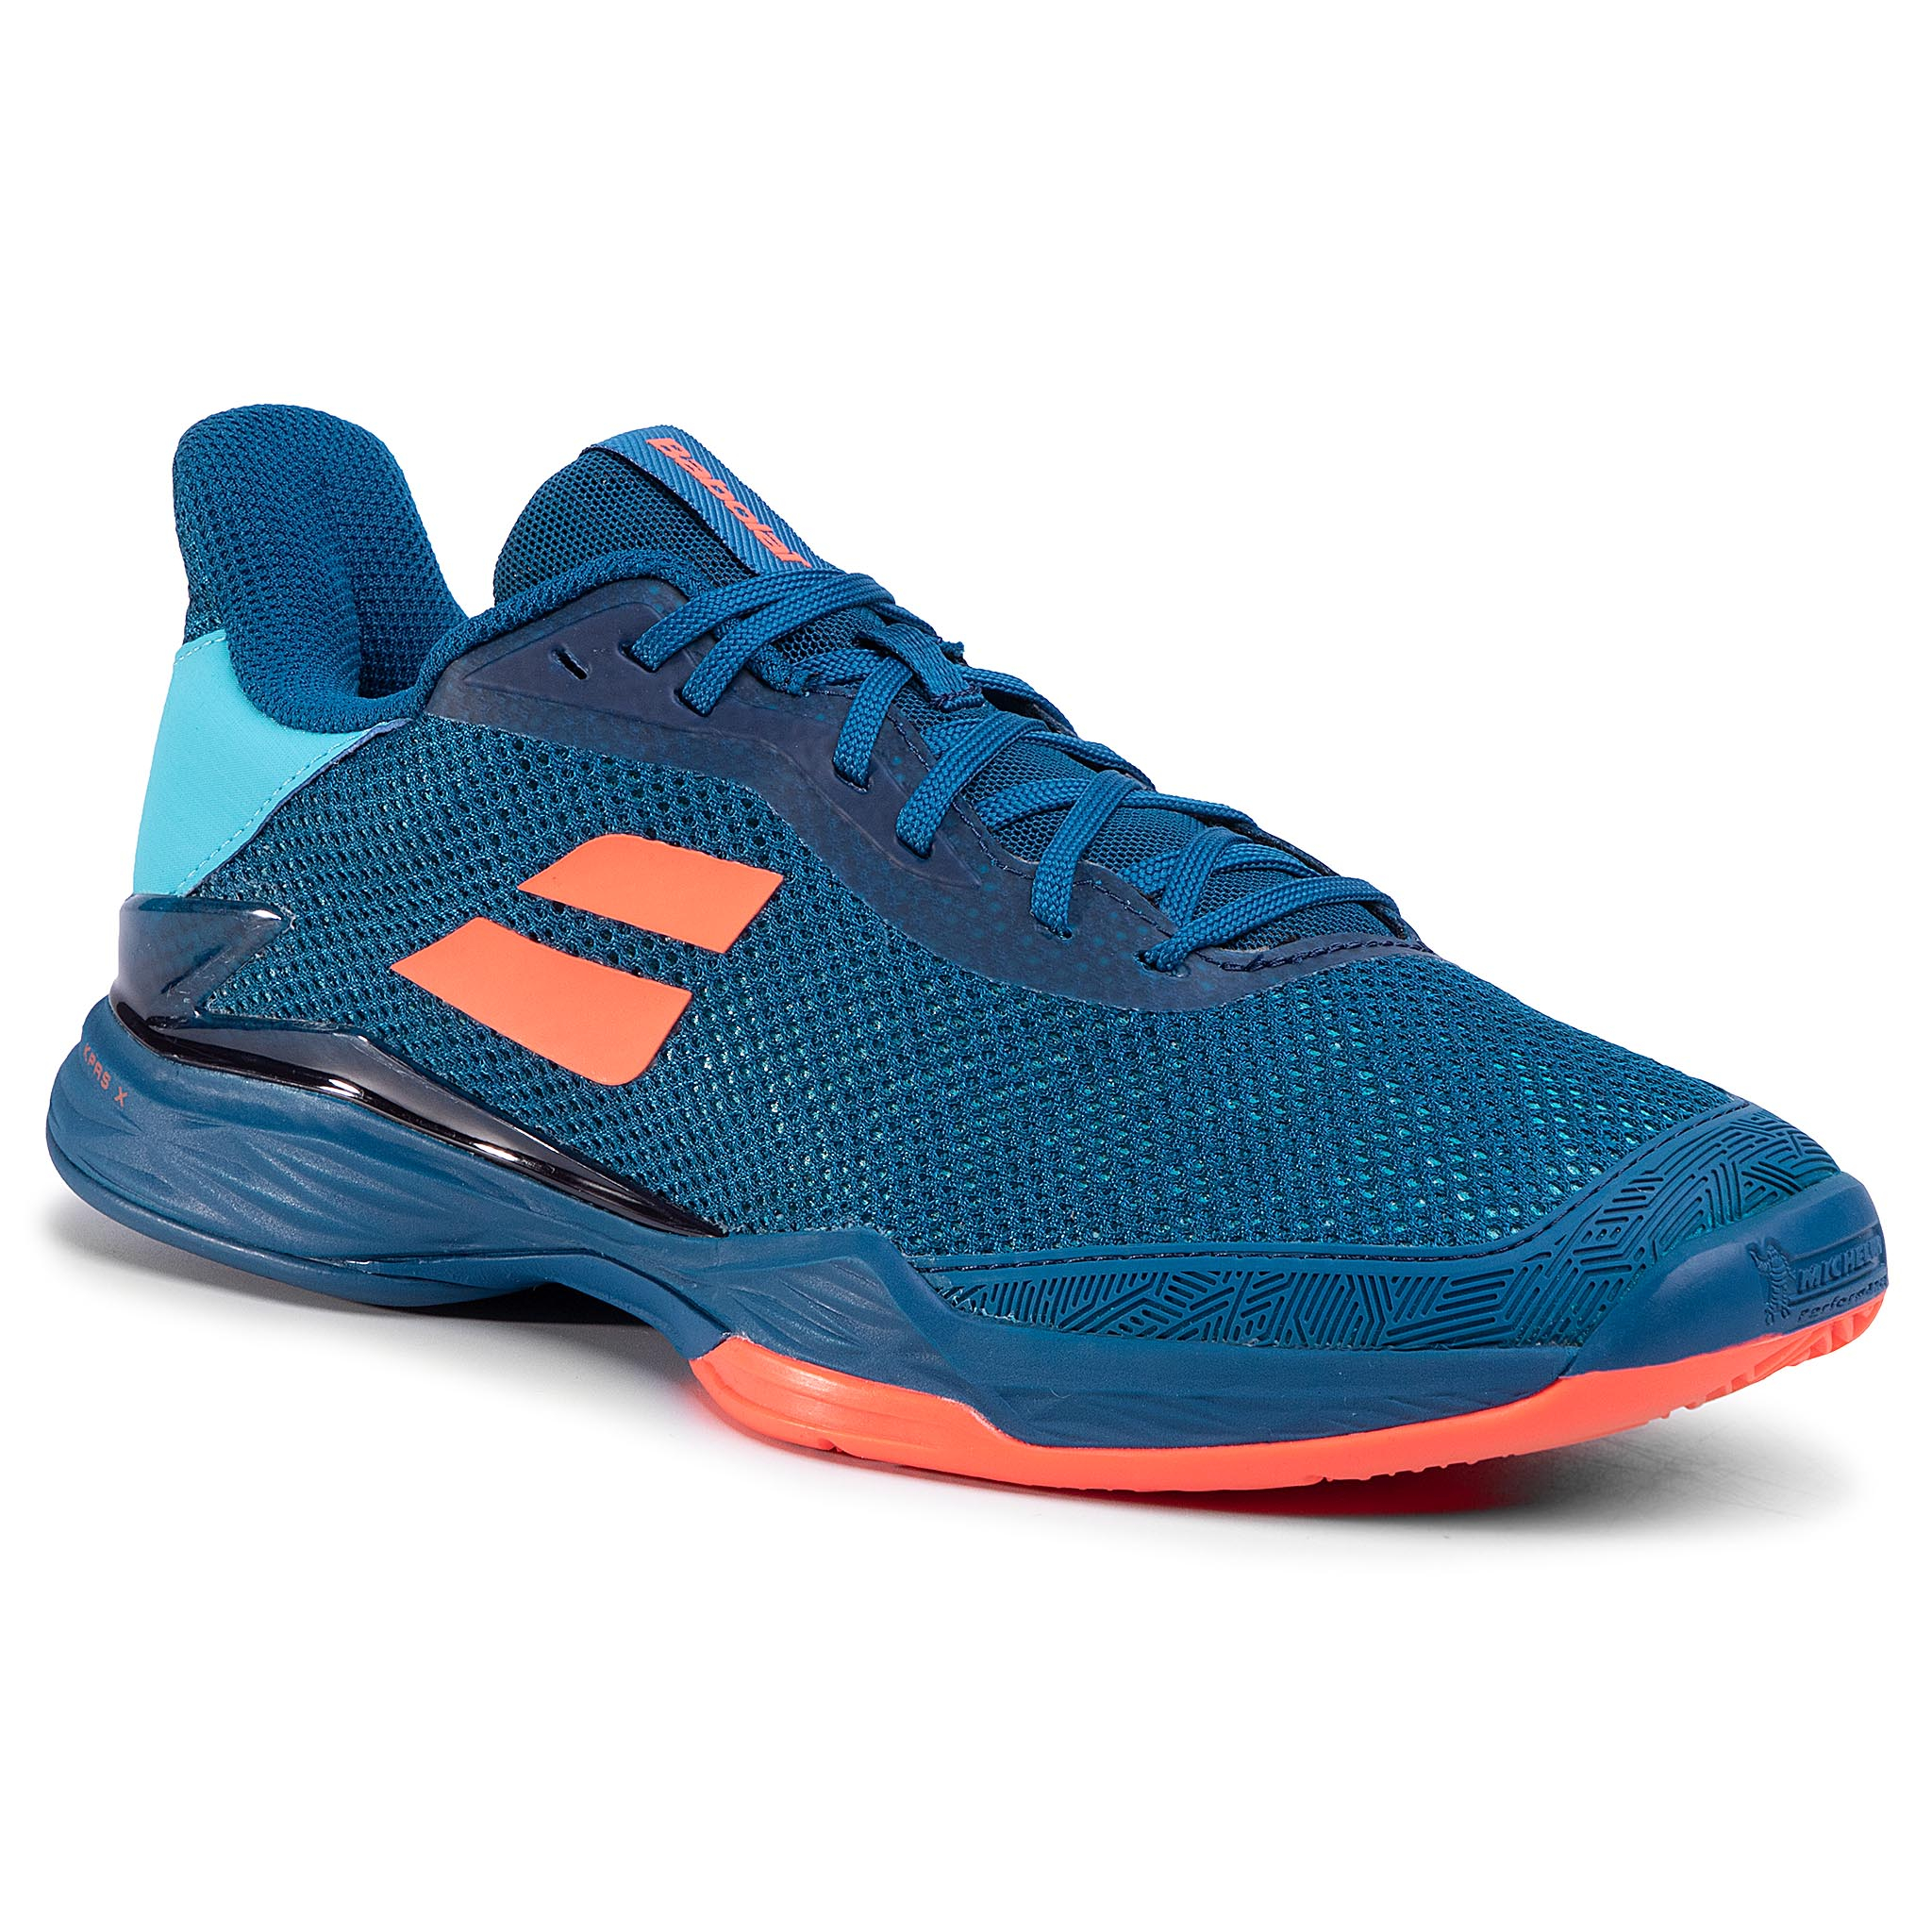 Pantofi Babolat - Jet Tere Clay Men 30s20650 Blue/Fluo Strike imagine epantofi.ro 2021